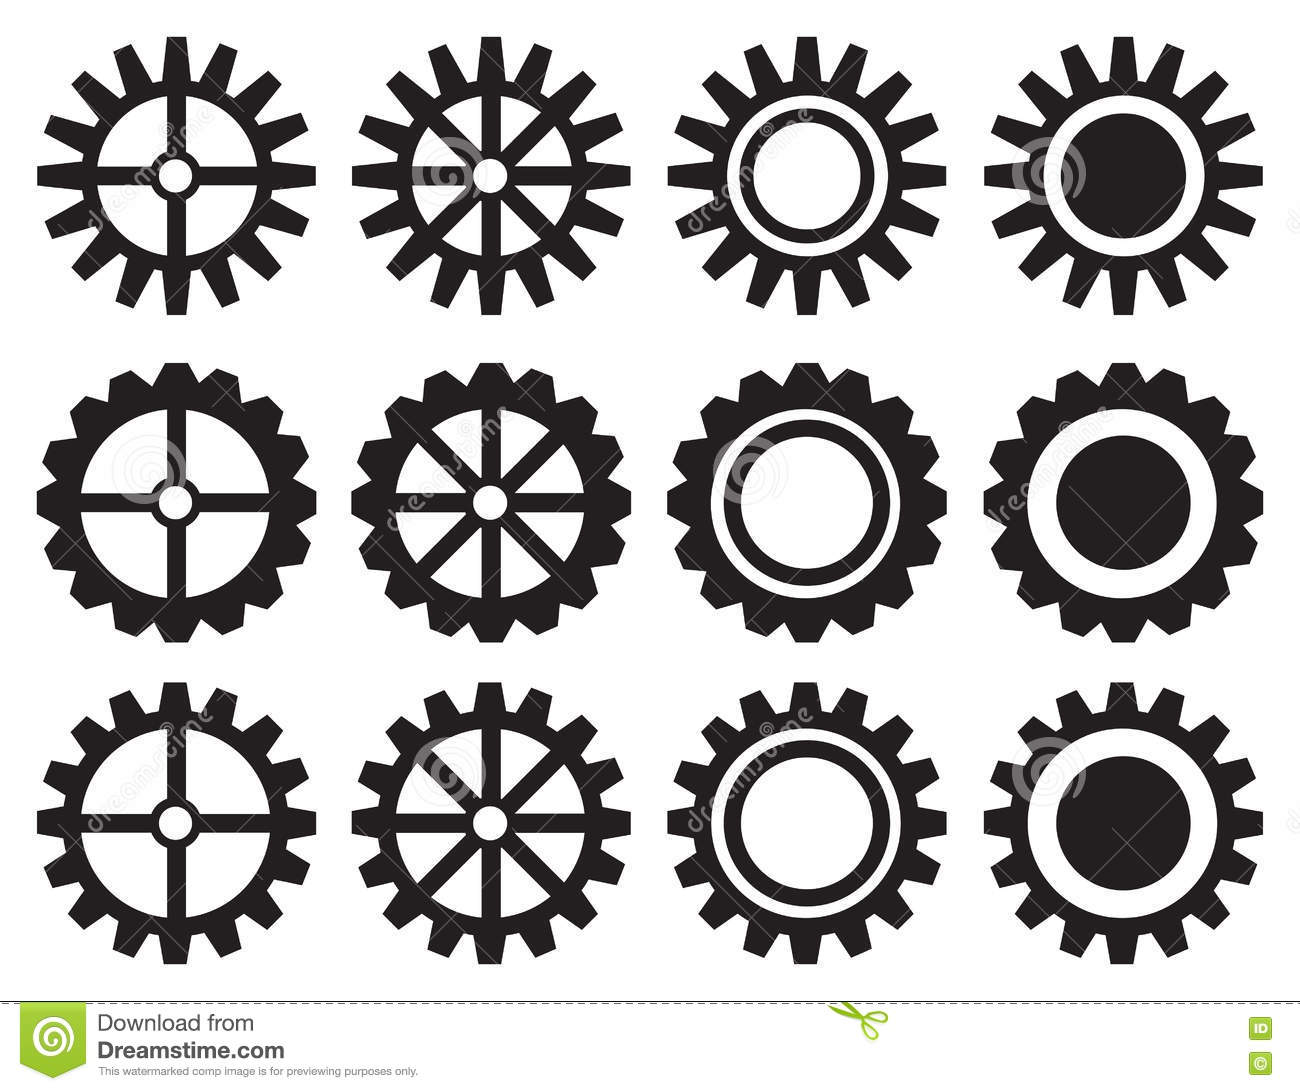 Rotary clipart 3 » Clipart Station.